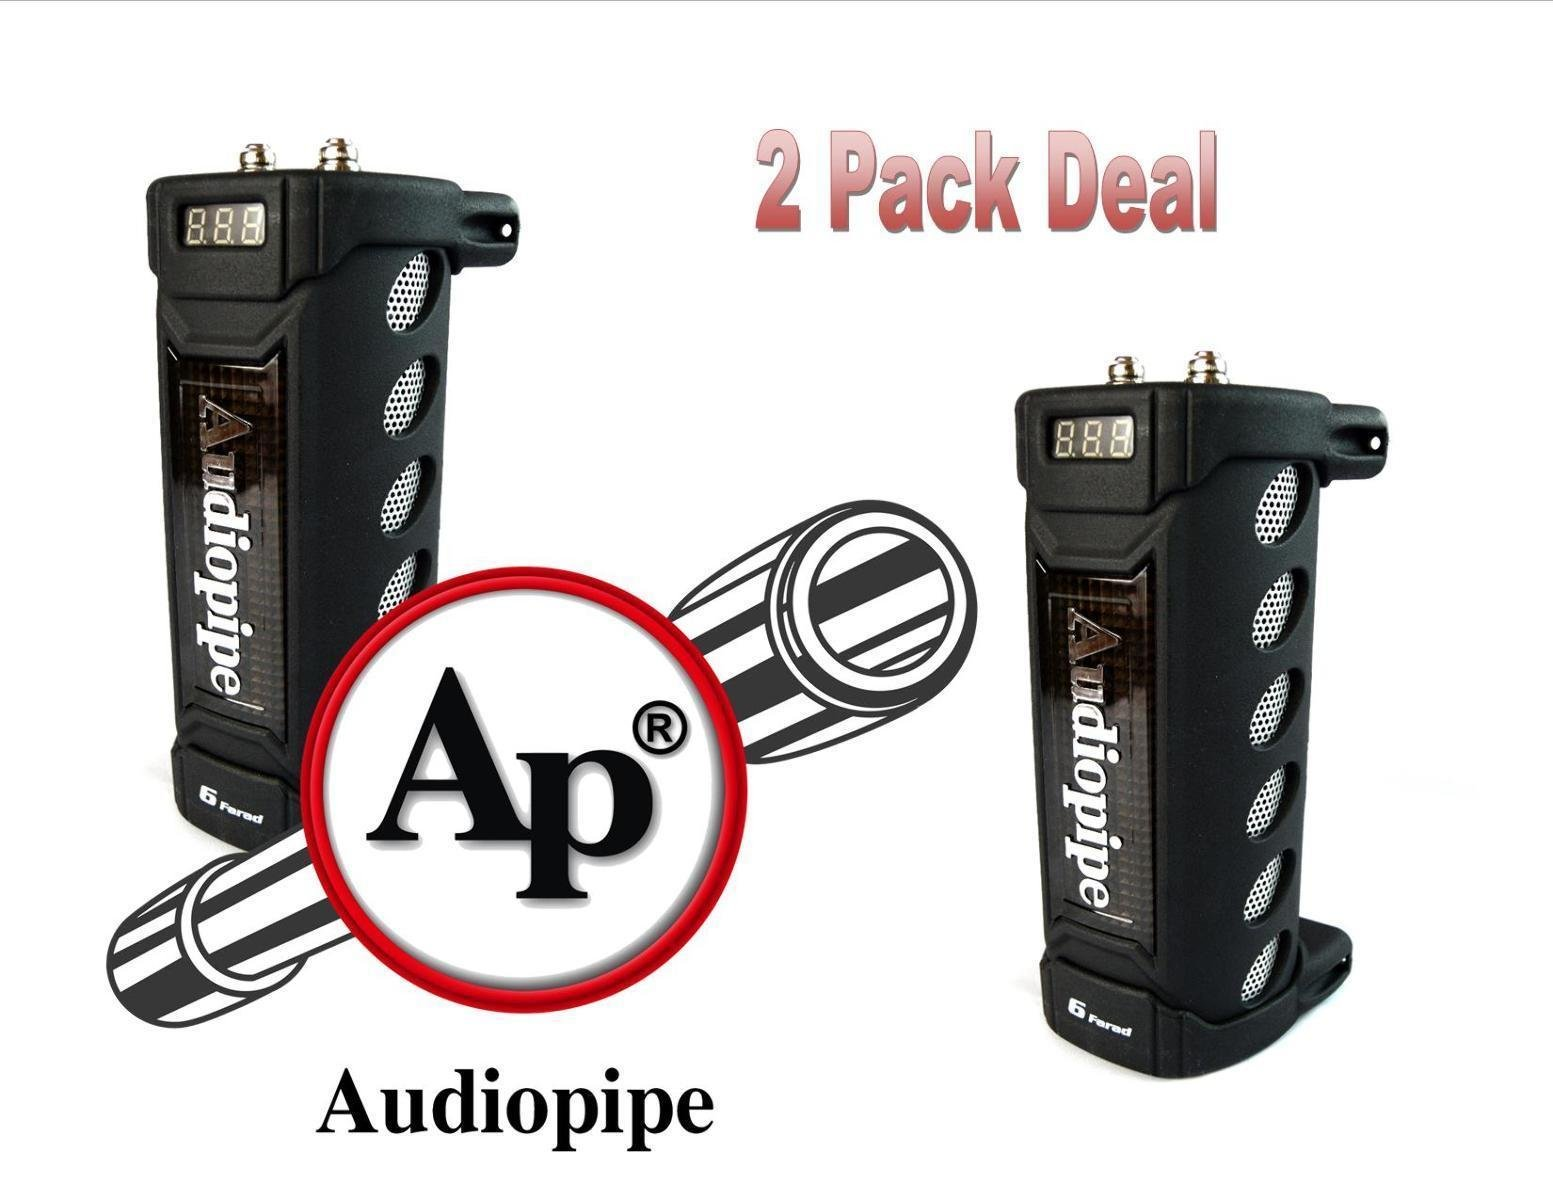 2 Pack Audiopipe ACAP-6000 6 Farad Digital Power Capacitor Car Audio Amplifier by Audiopipe